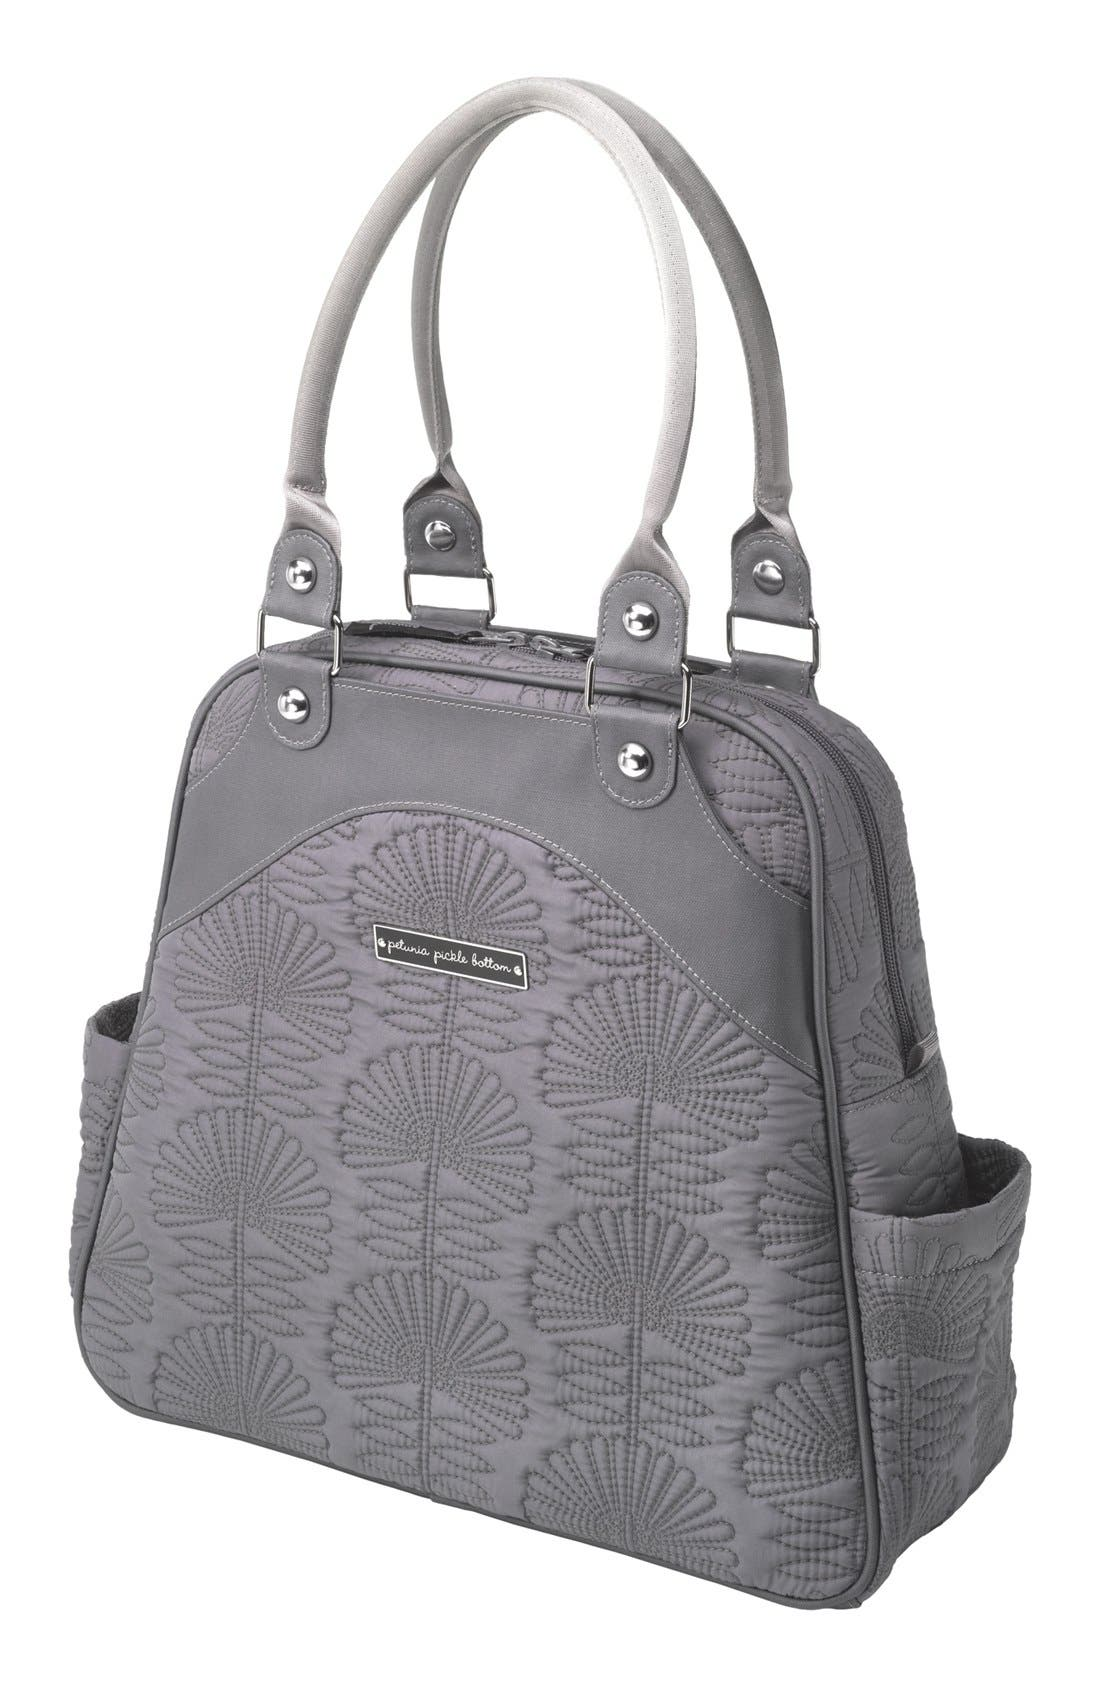 PETUNIA PICKLE BOTTOM 'Embossed Sashay' Diaper Bag, Main, color, 020